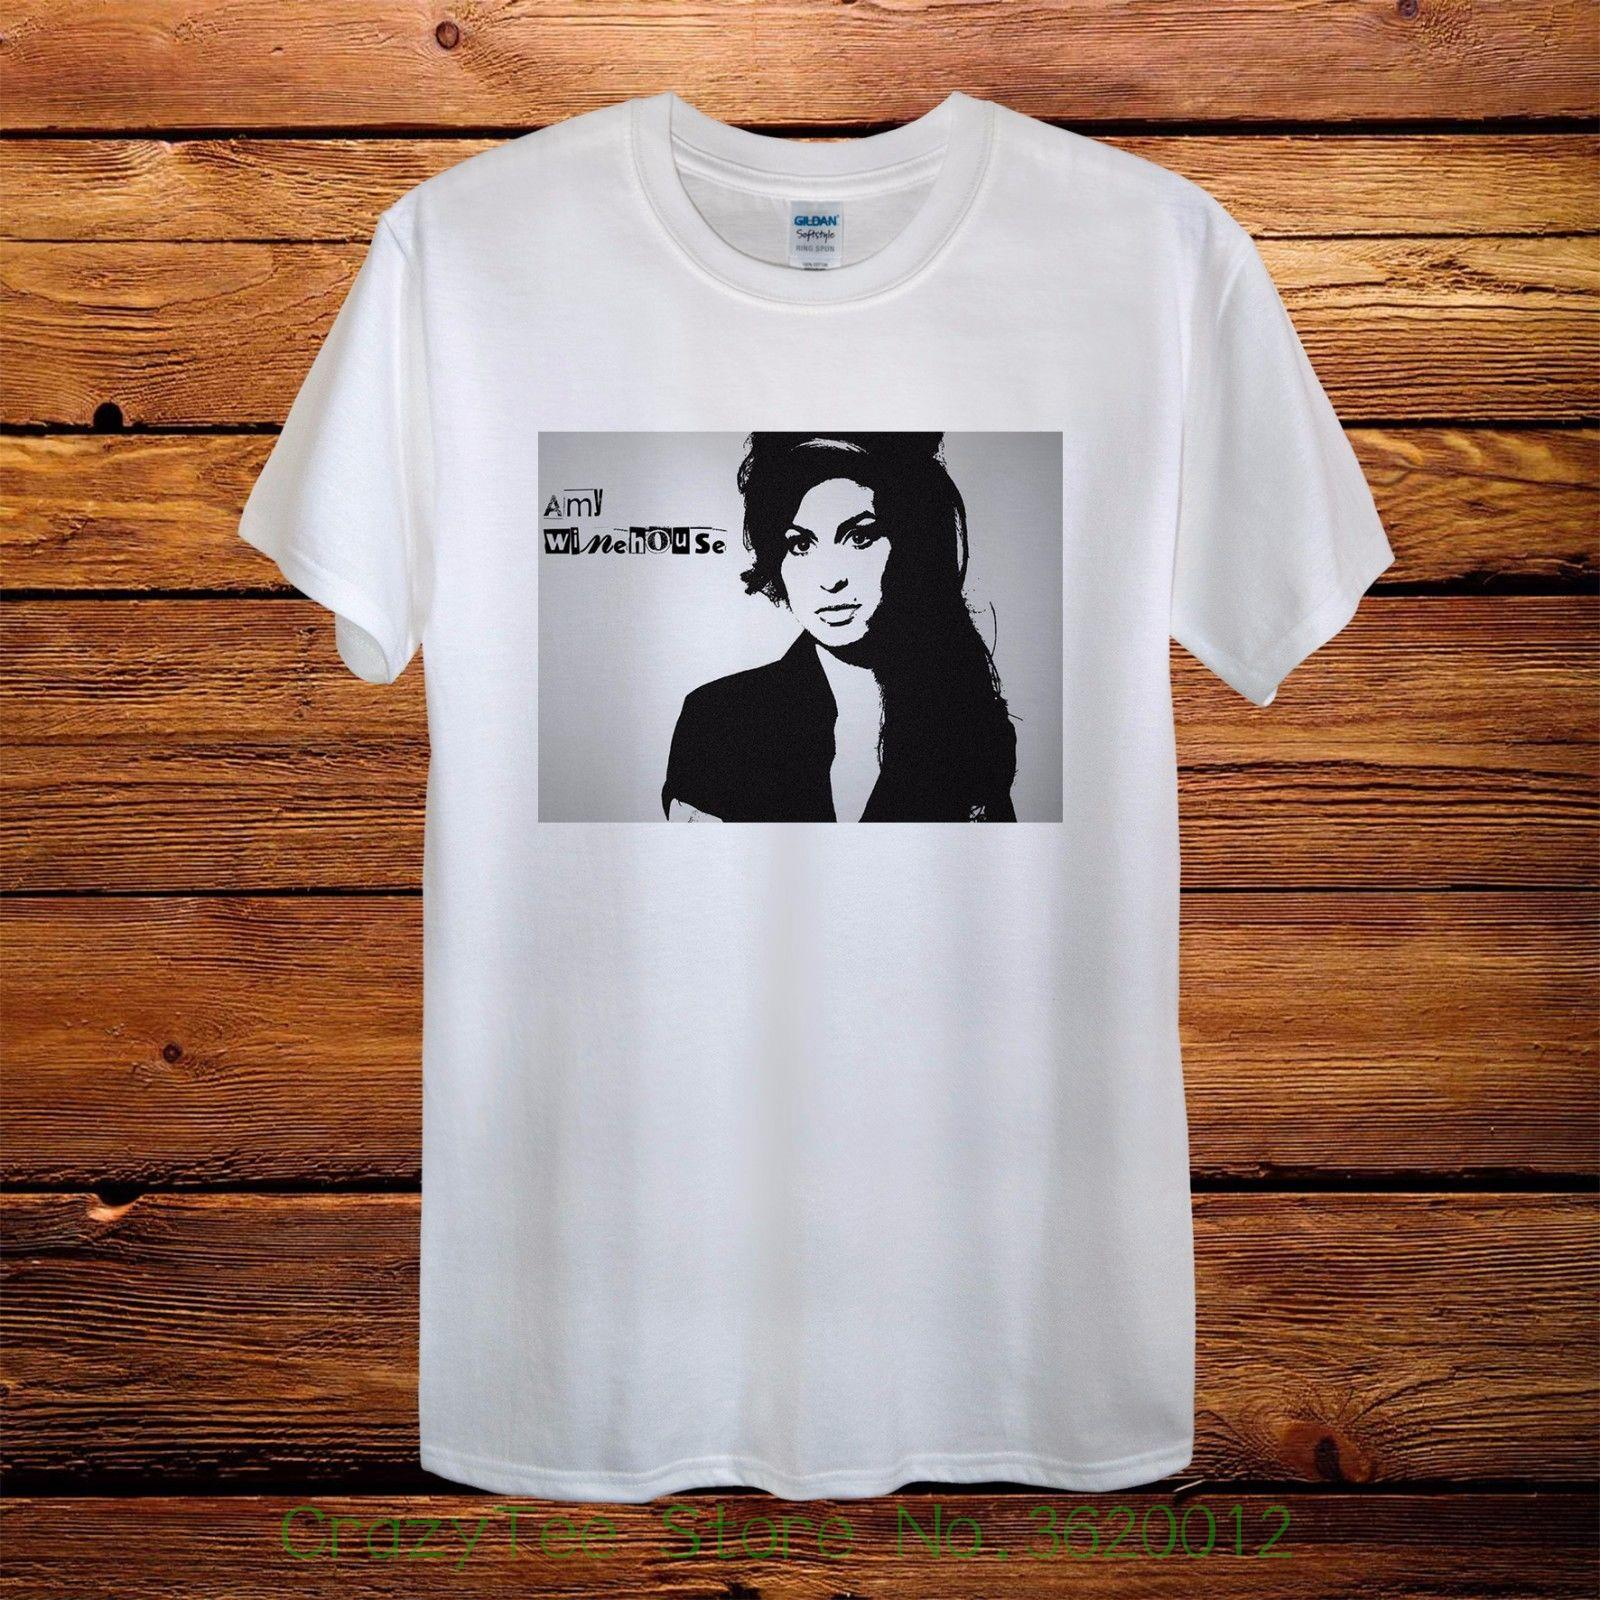 4dde4740b Women S Tee Amy Winehouse New Design T Shirt Men Unisex Women Fitted Rock  100% Cotton New Bm Loose Fitting Tops Shirt It Tee Shirts As T Shirt From  ...